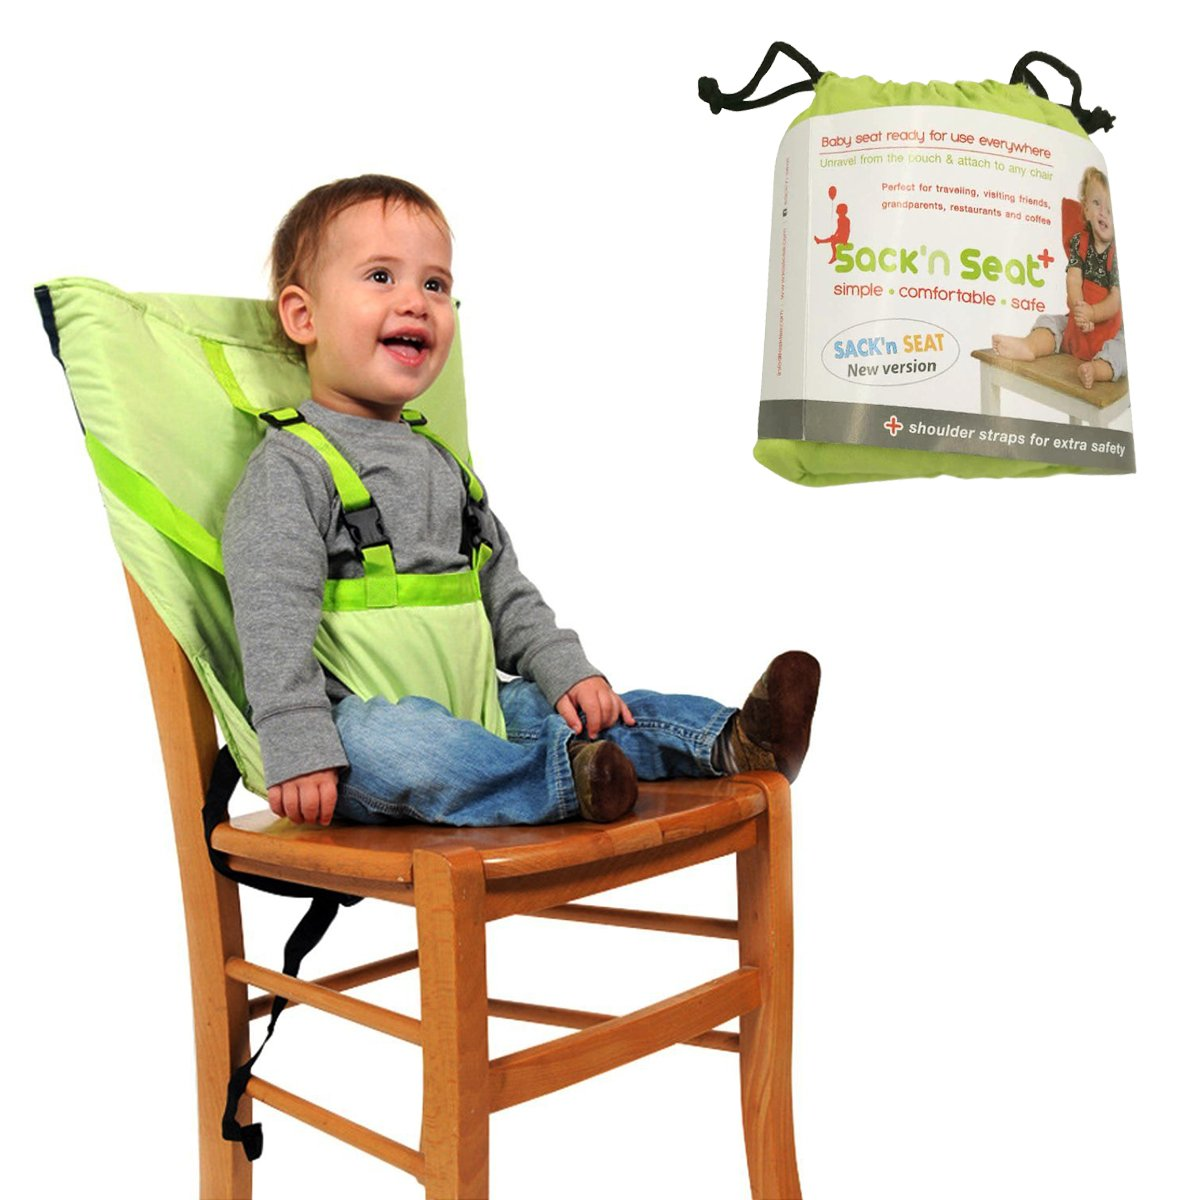 Aurelius Portable HighChair for Travel Baby and Toddler Harness Safety Seat,Perfect for Restaurants/Travelling